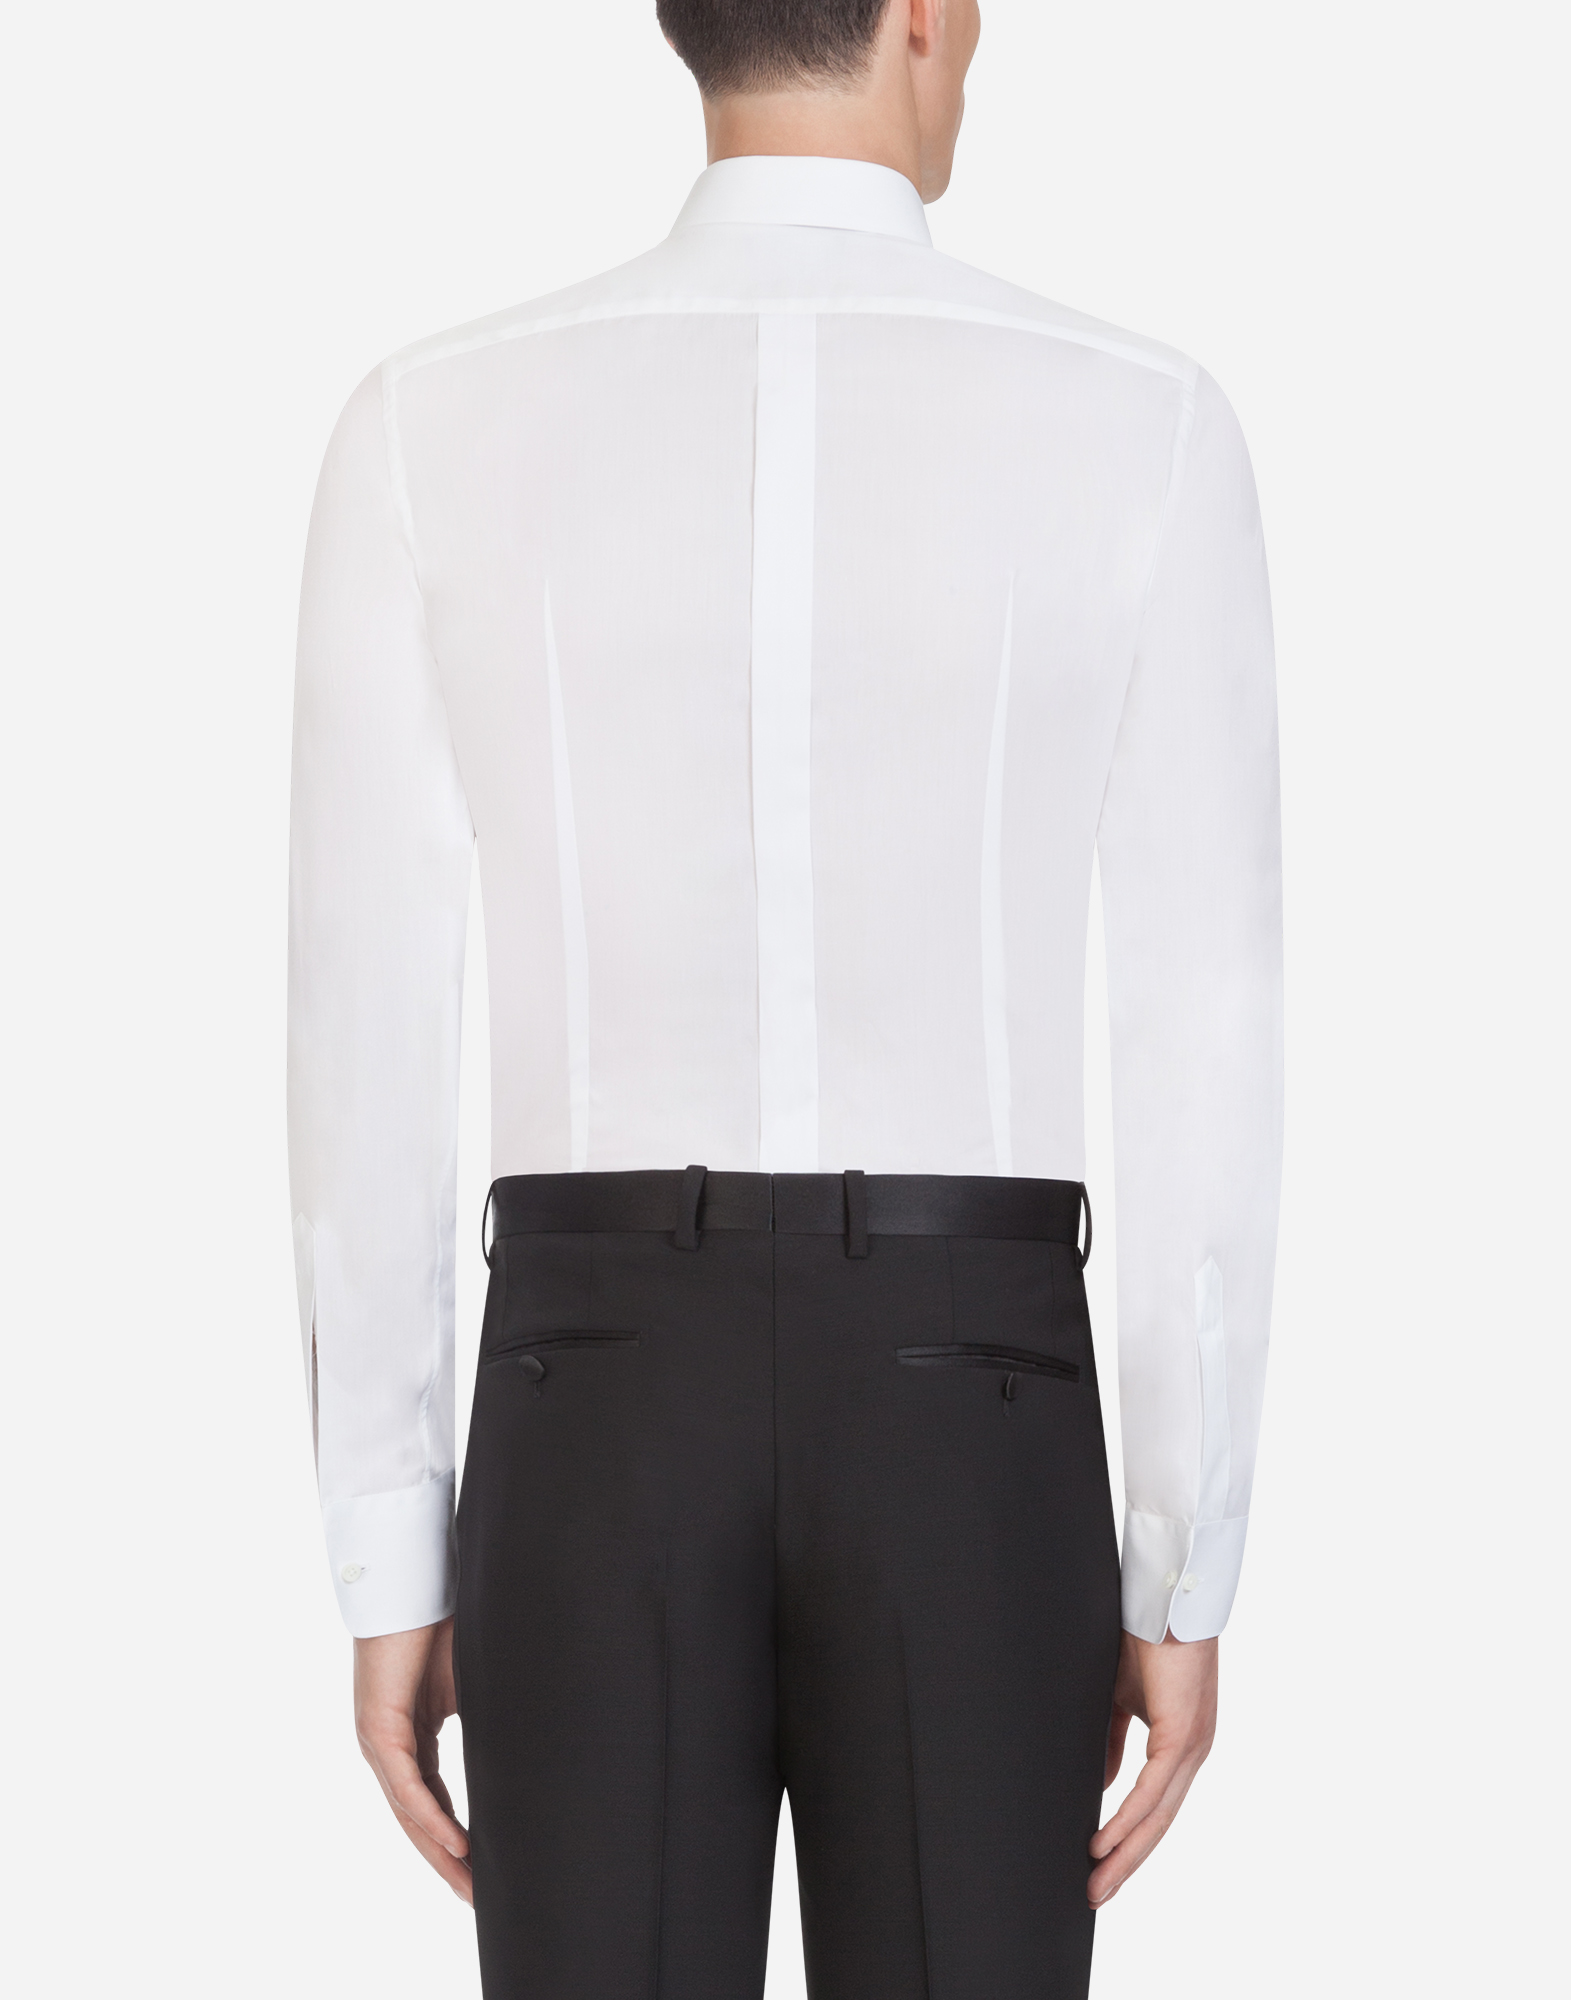 Dolce & Gabbana GOLD FIT TUXEDO SHIRT IN COTTON POPLIN